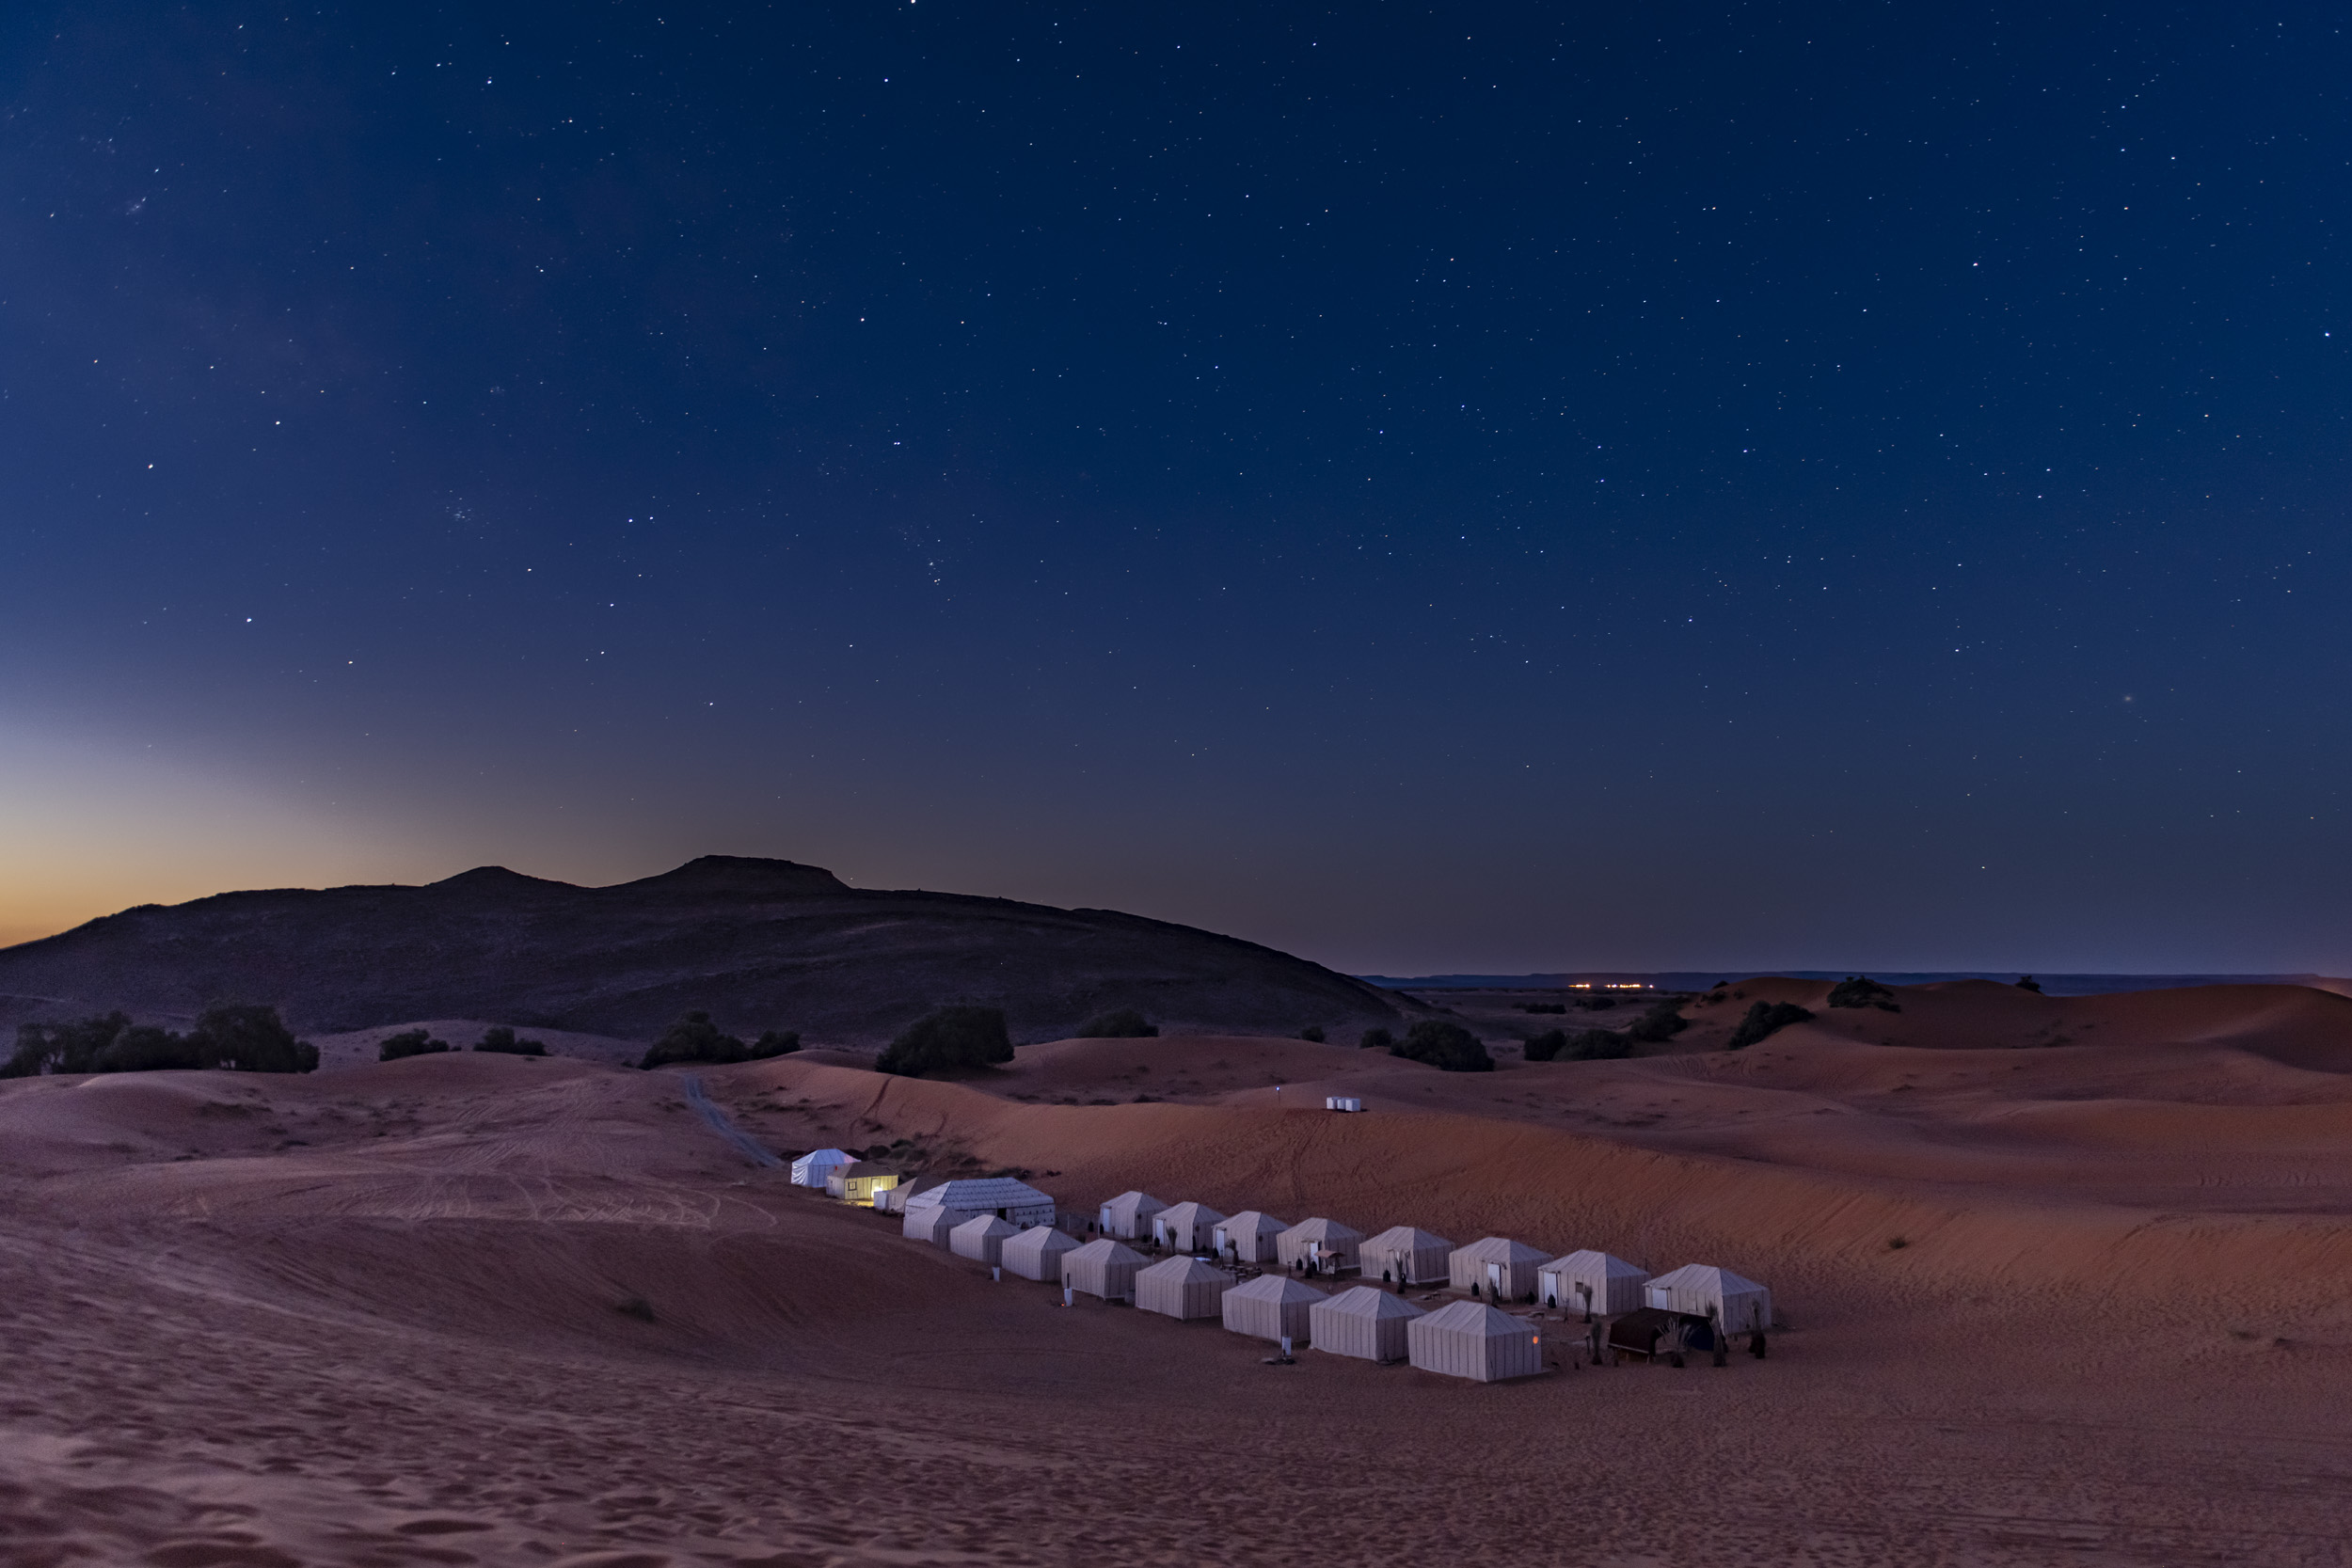 Camping in the Sahara - Morocco